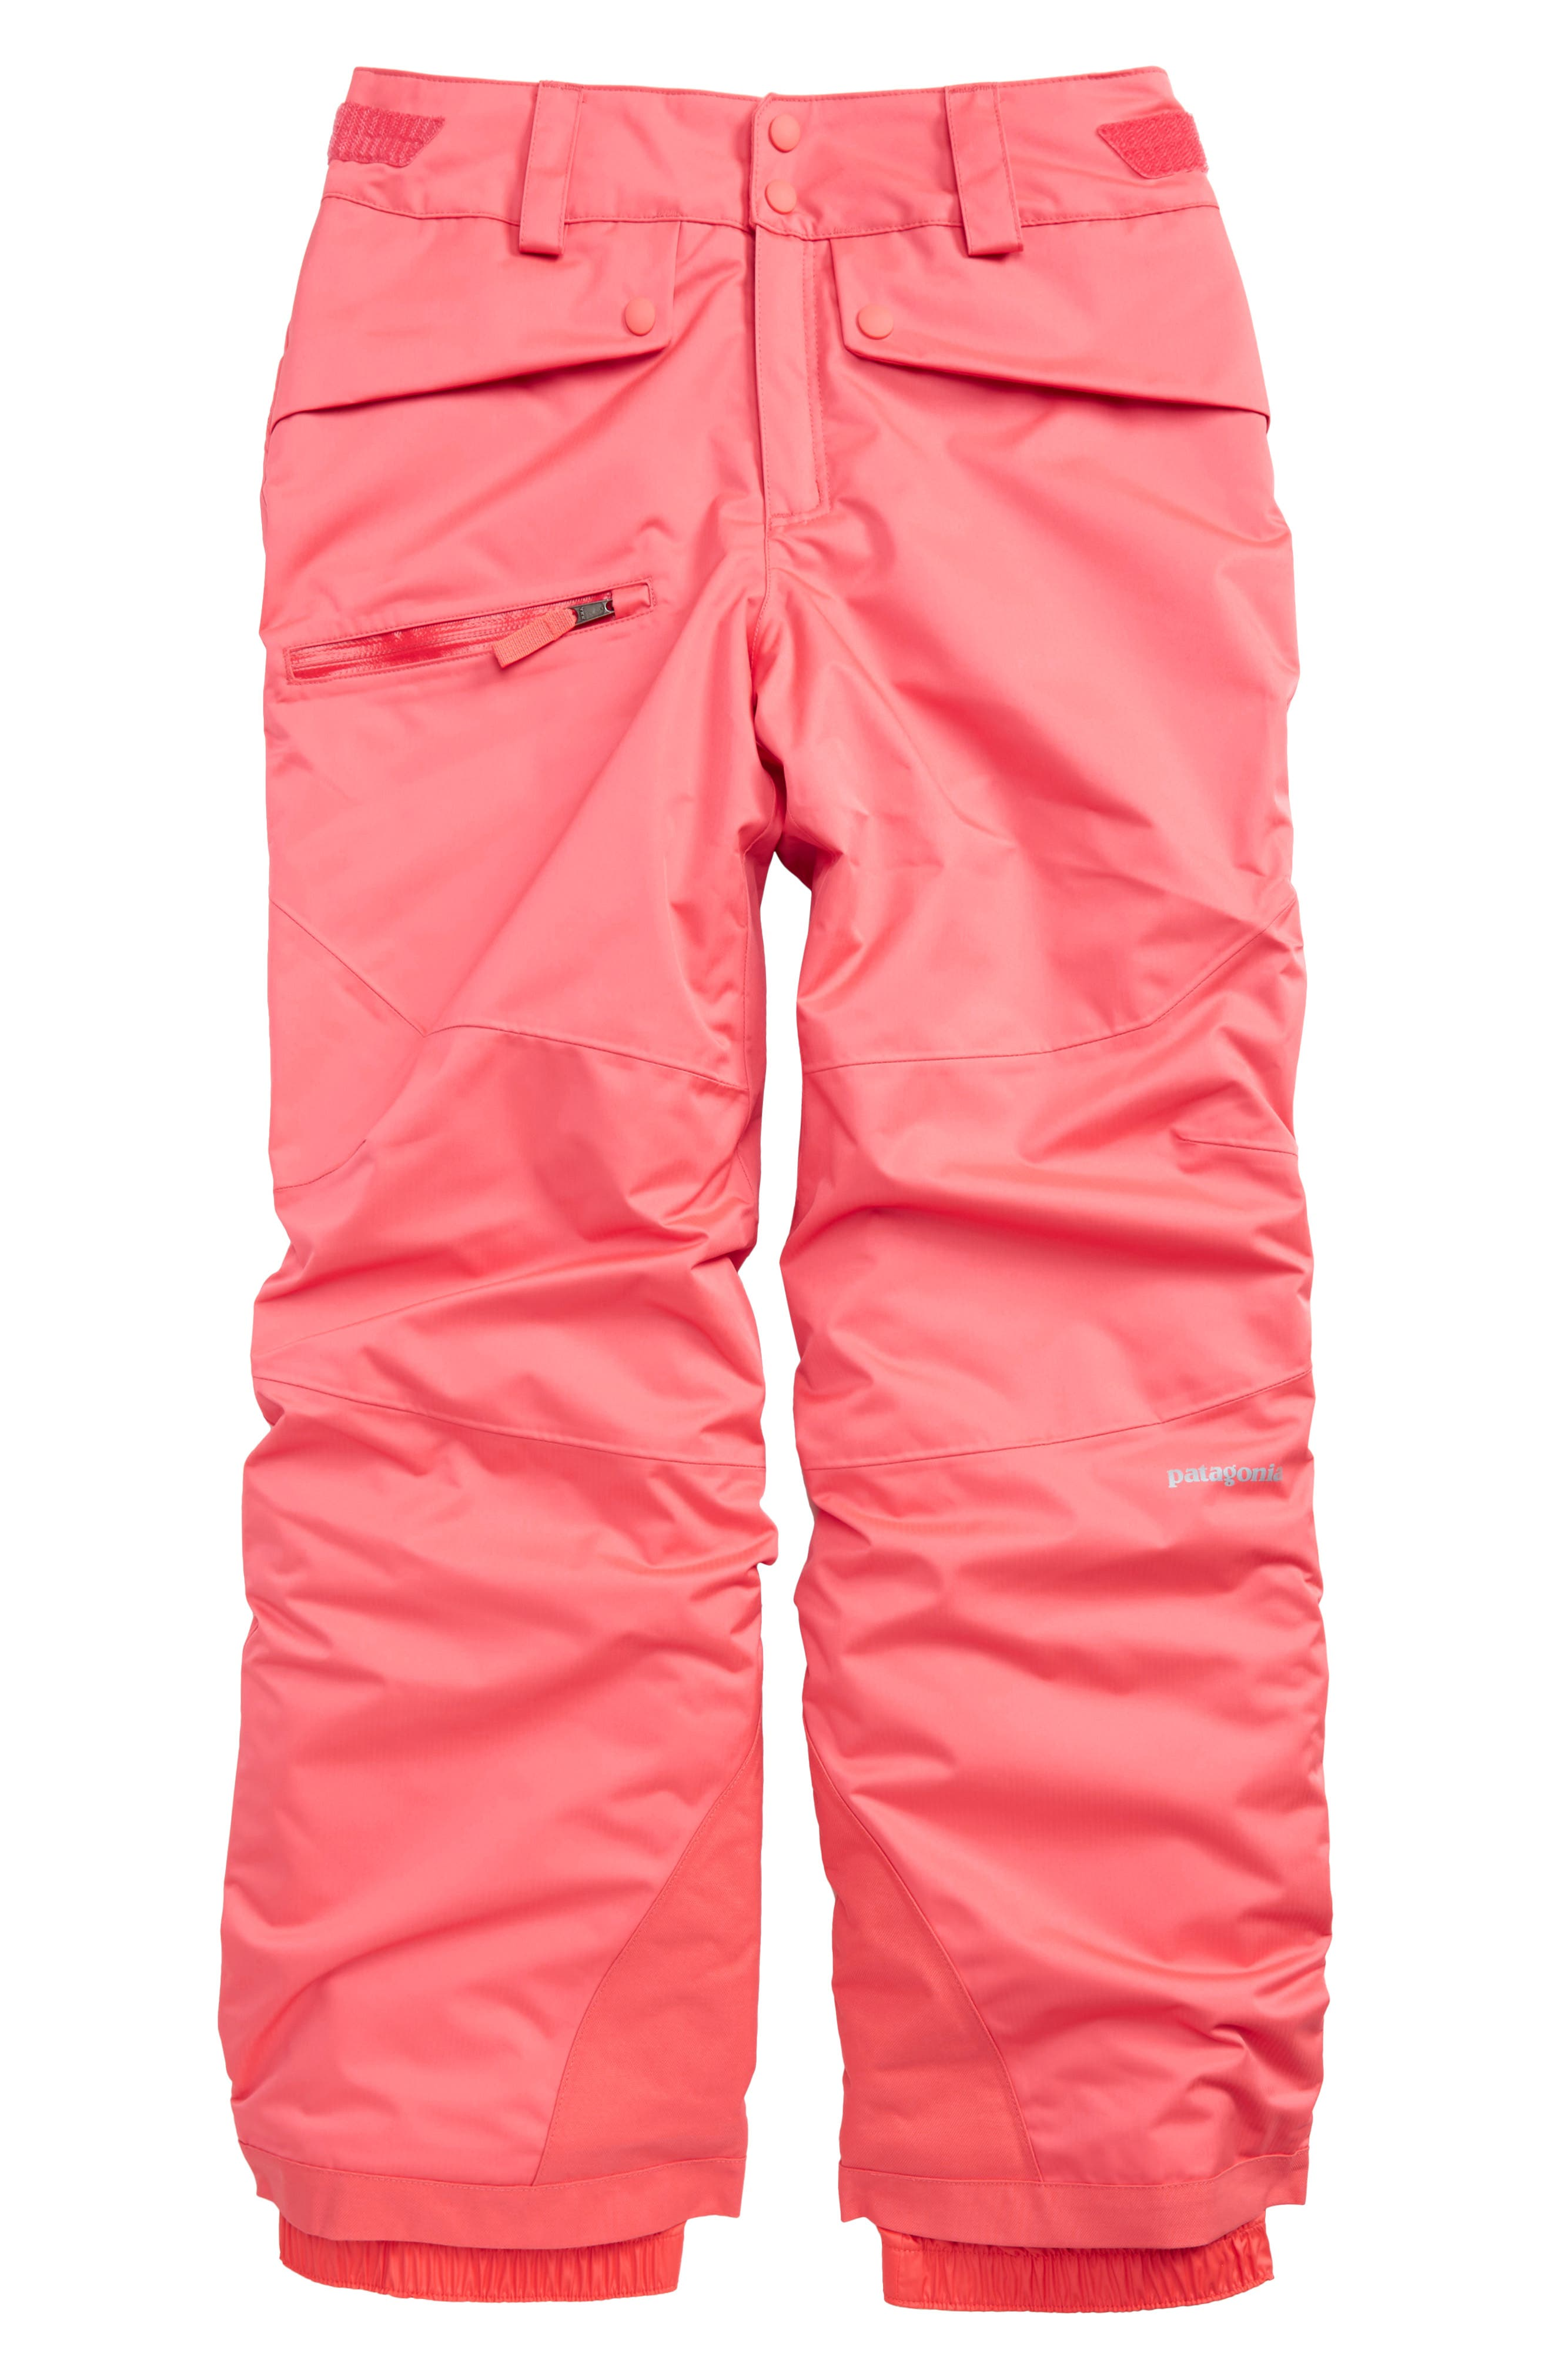 Snowbelle Insulated Snow Pants,                         Main,                         color, Indy Pink